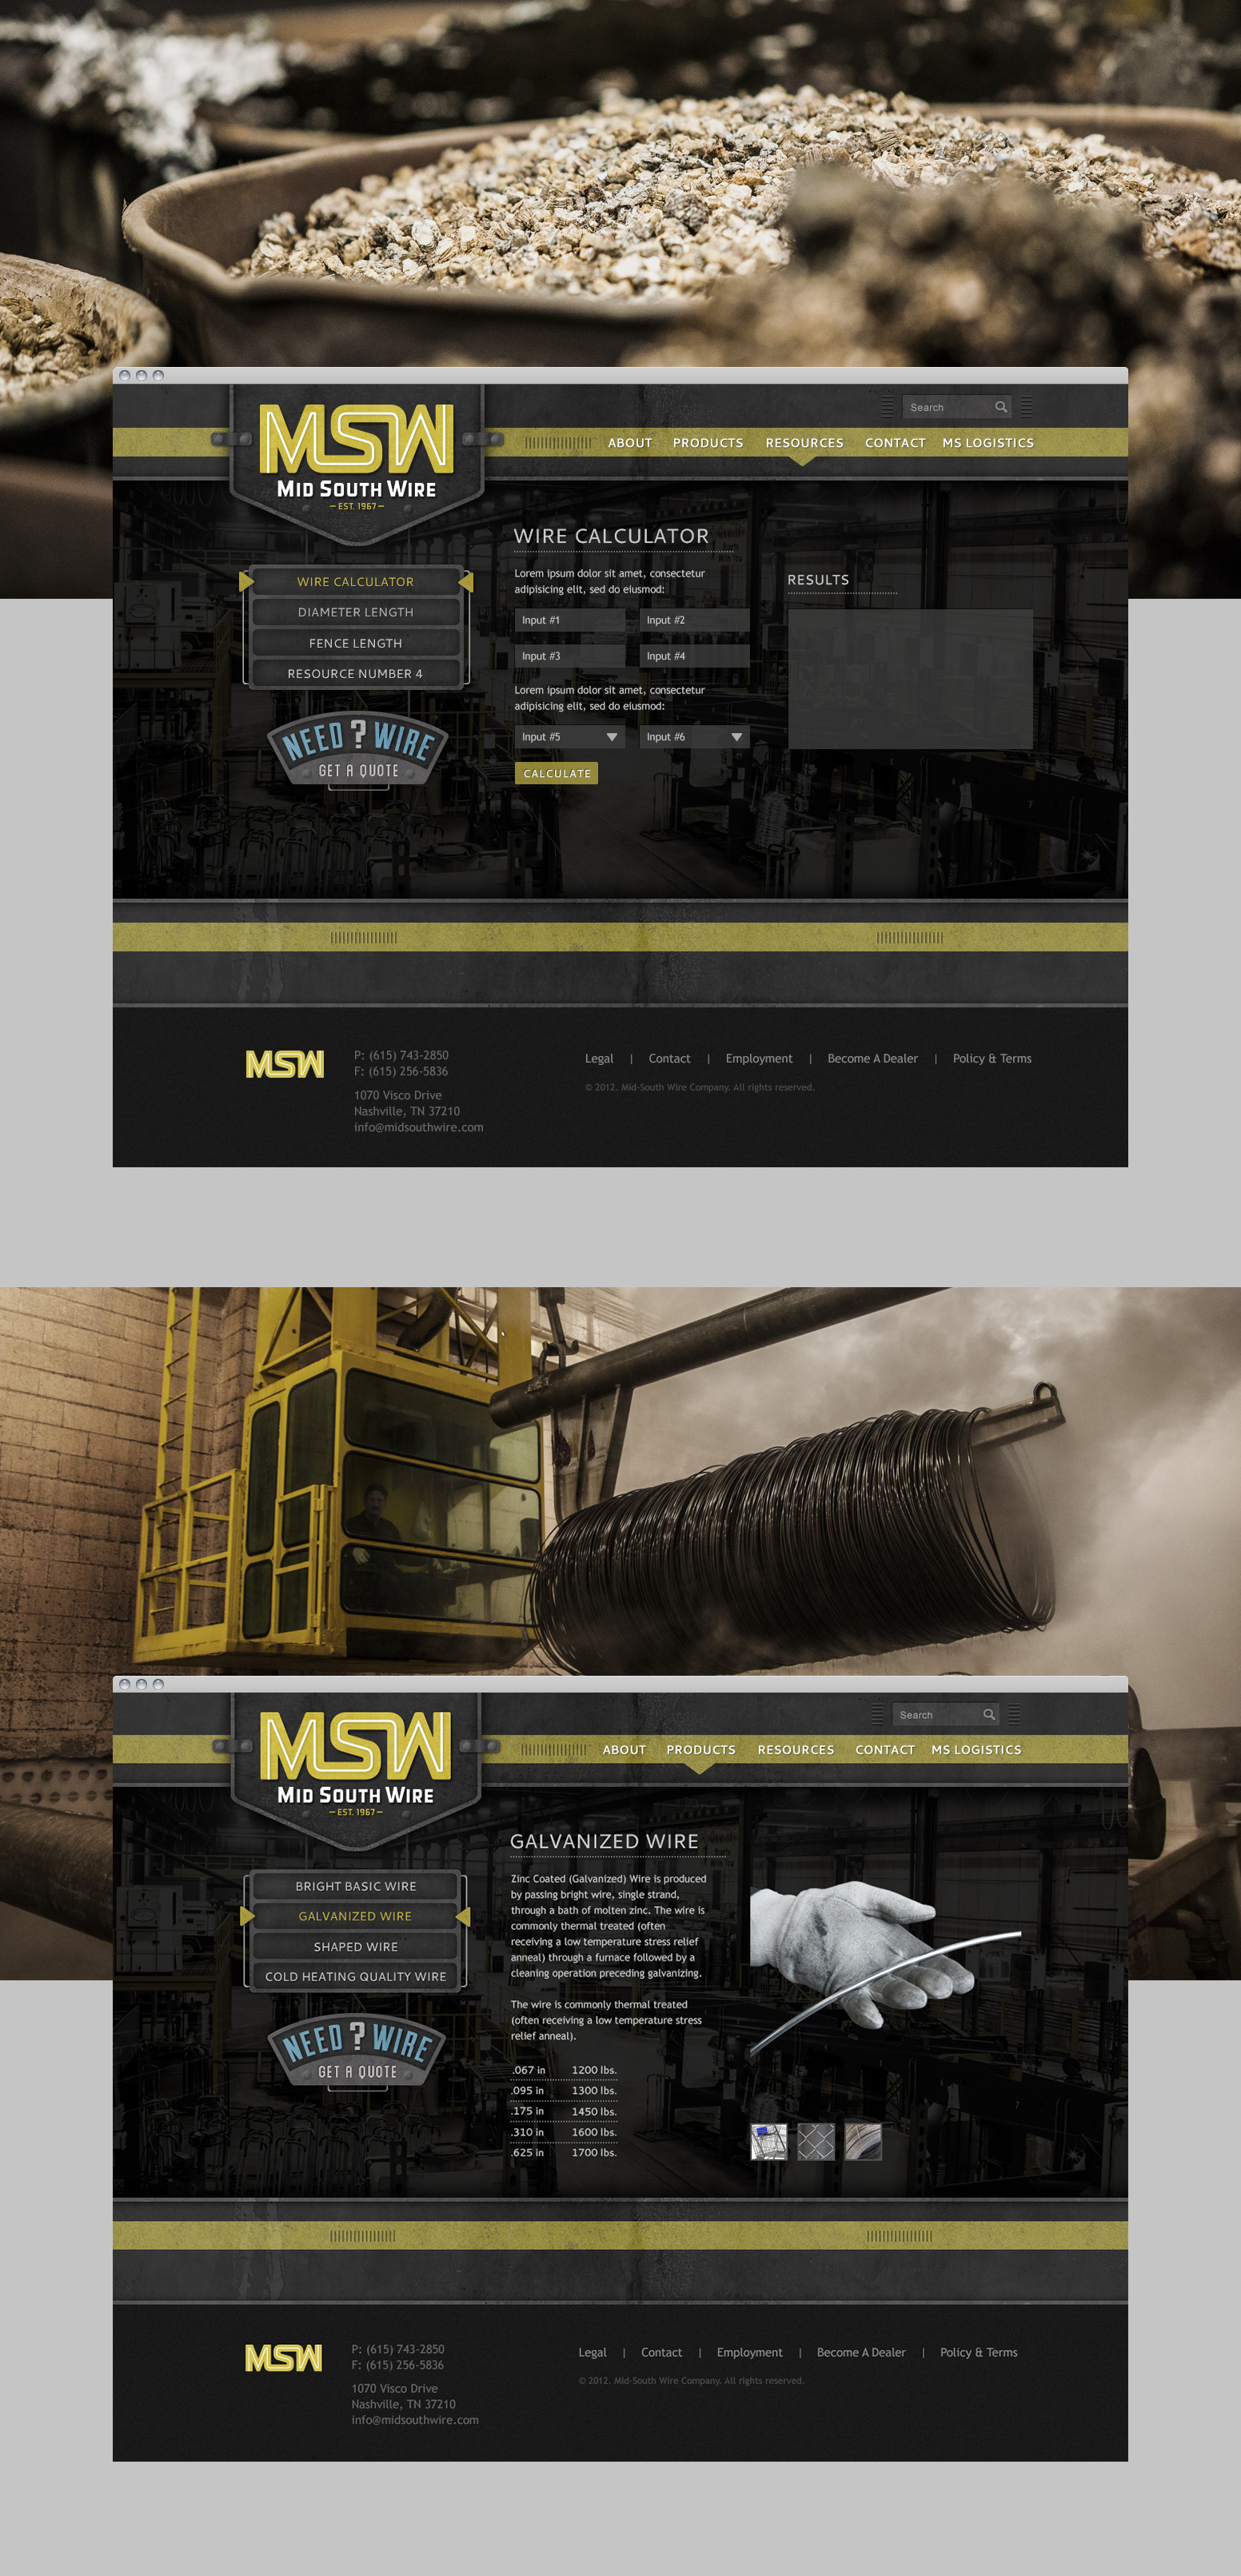 MSW_products.jpg